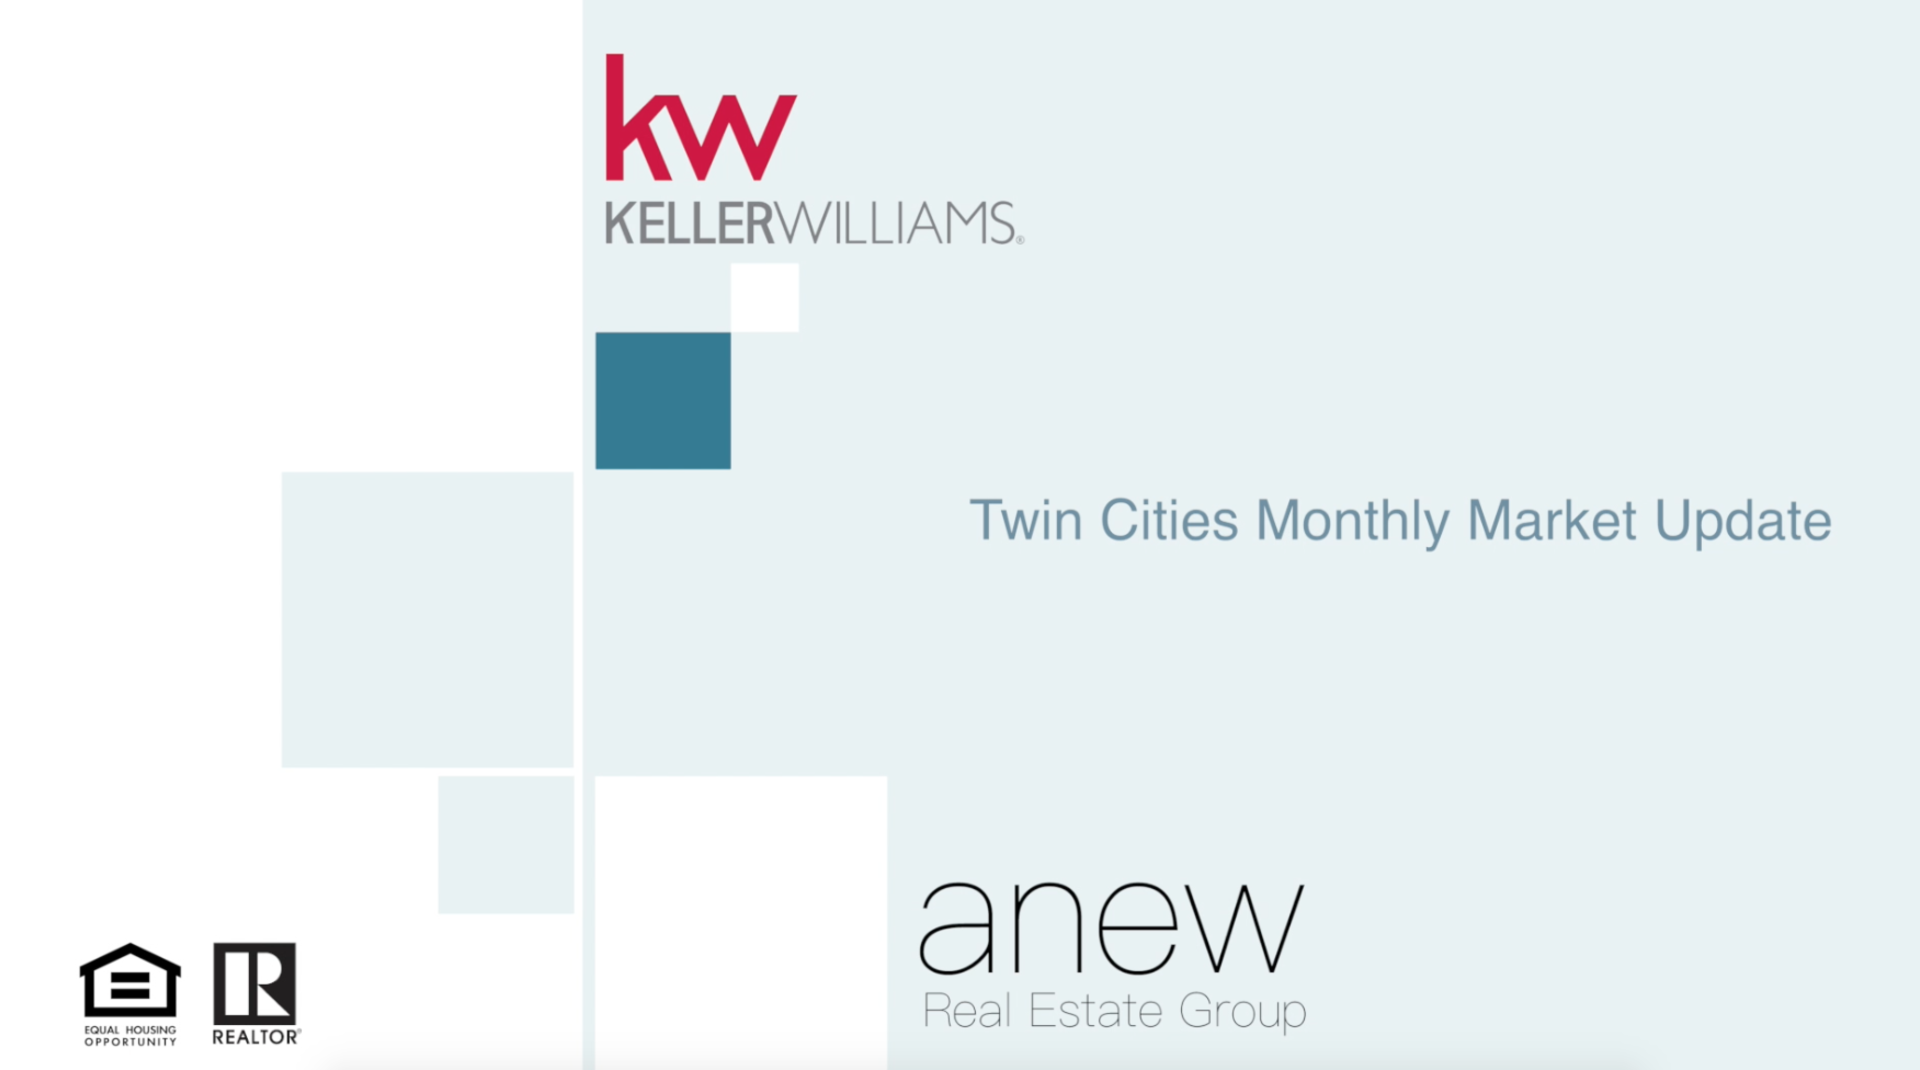 Twin Cities Monthly Market Update for August, 2018